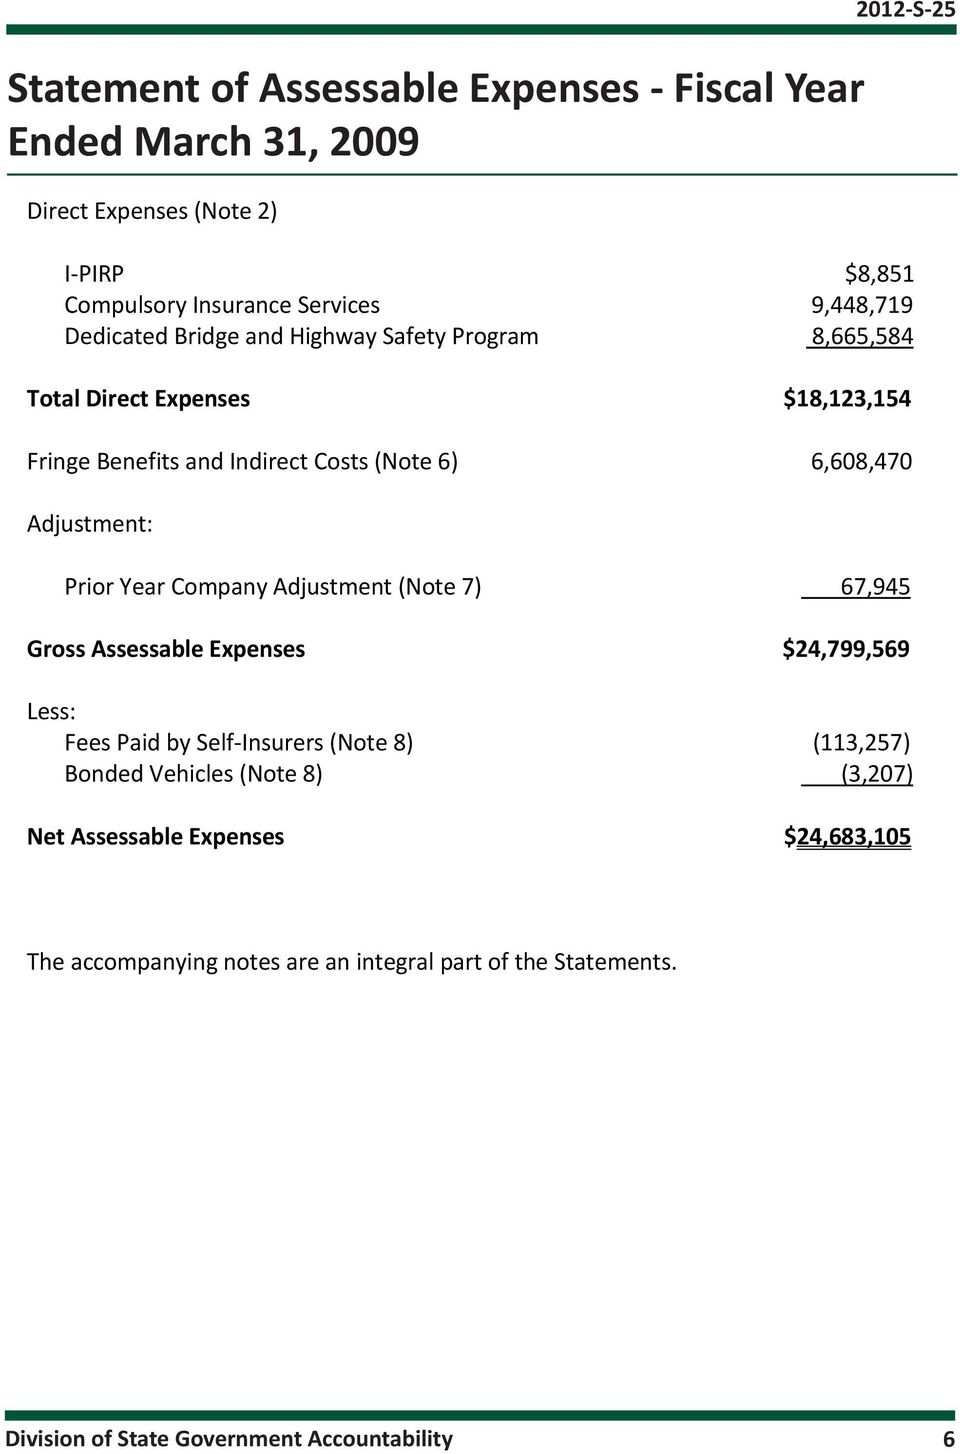 Prior Year Company Adjustment (Note 7) 67,945 Gross Assessable Expenses $24,799,569 Less: Fees Paid by Self-Insurers (Note 8) (113,257) Bonded Vehicles